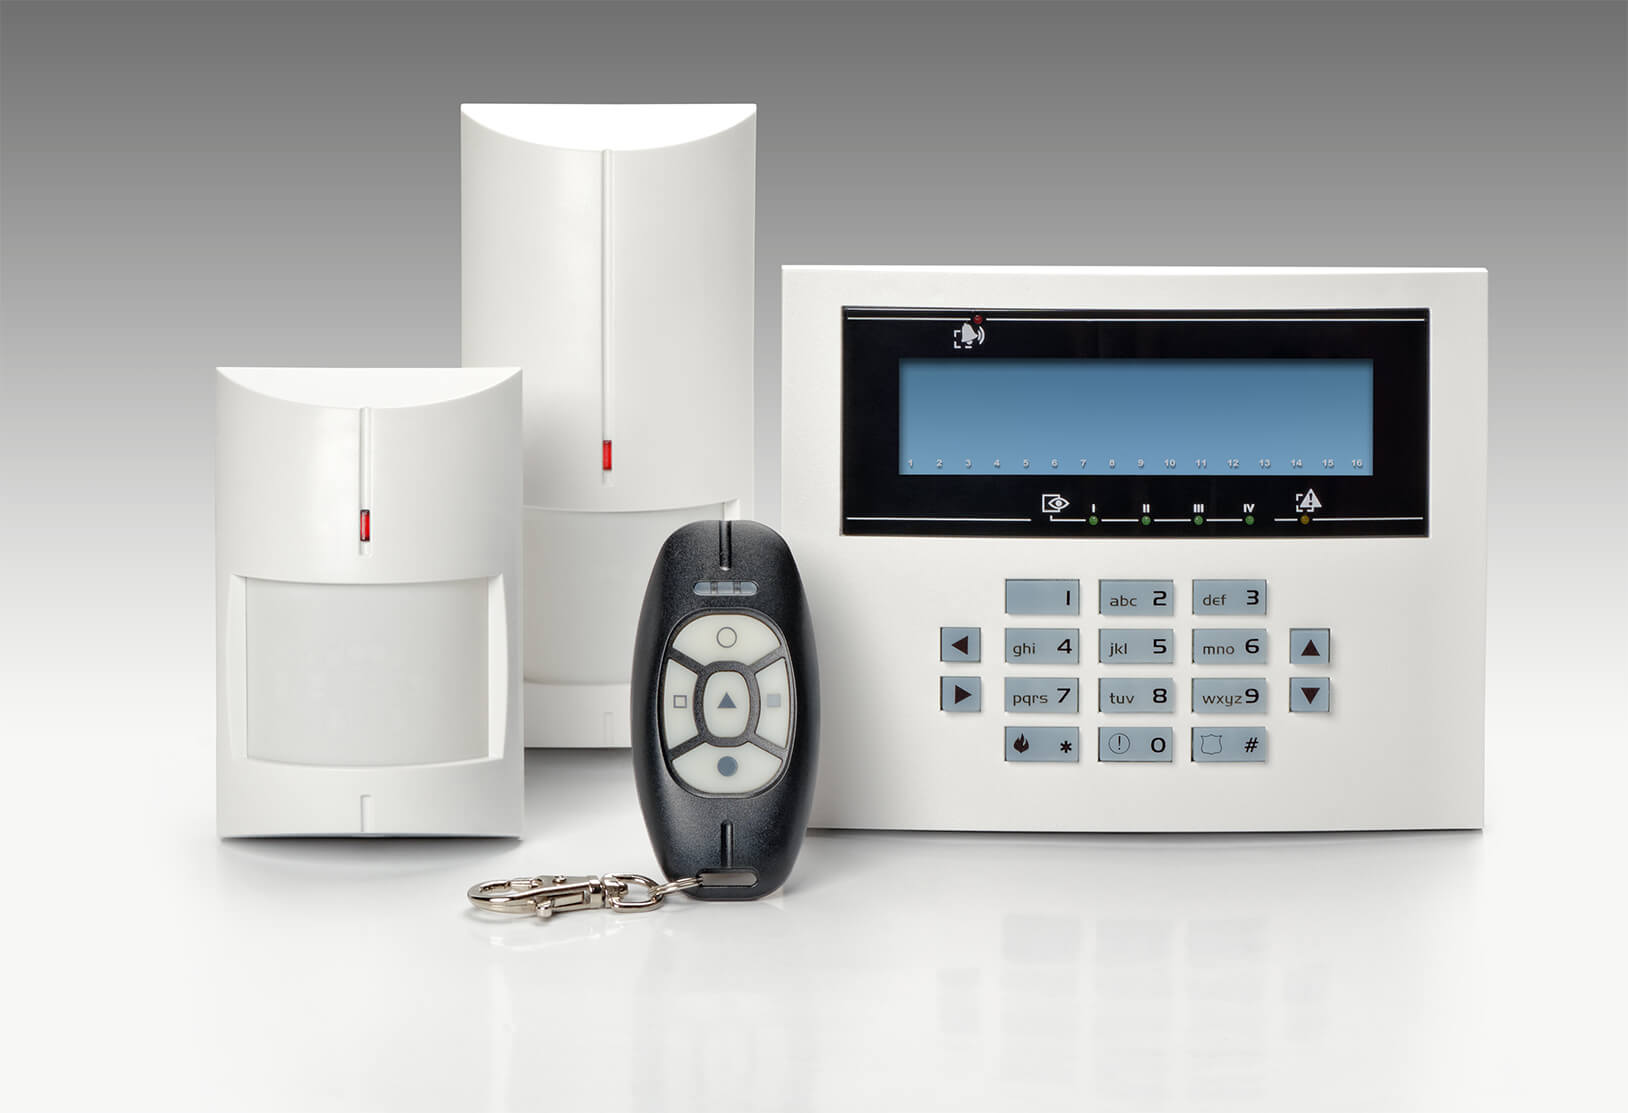 Commercial Burglar Alarms For Business in Bethnal Green E1  - Local Bethnal Green E1 burglar alarm company.Call 02078872244 - Dedicated to Safety & Security. Companies, shops and homes ..